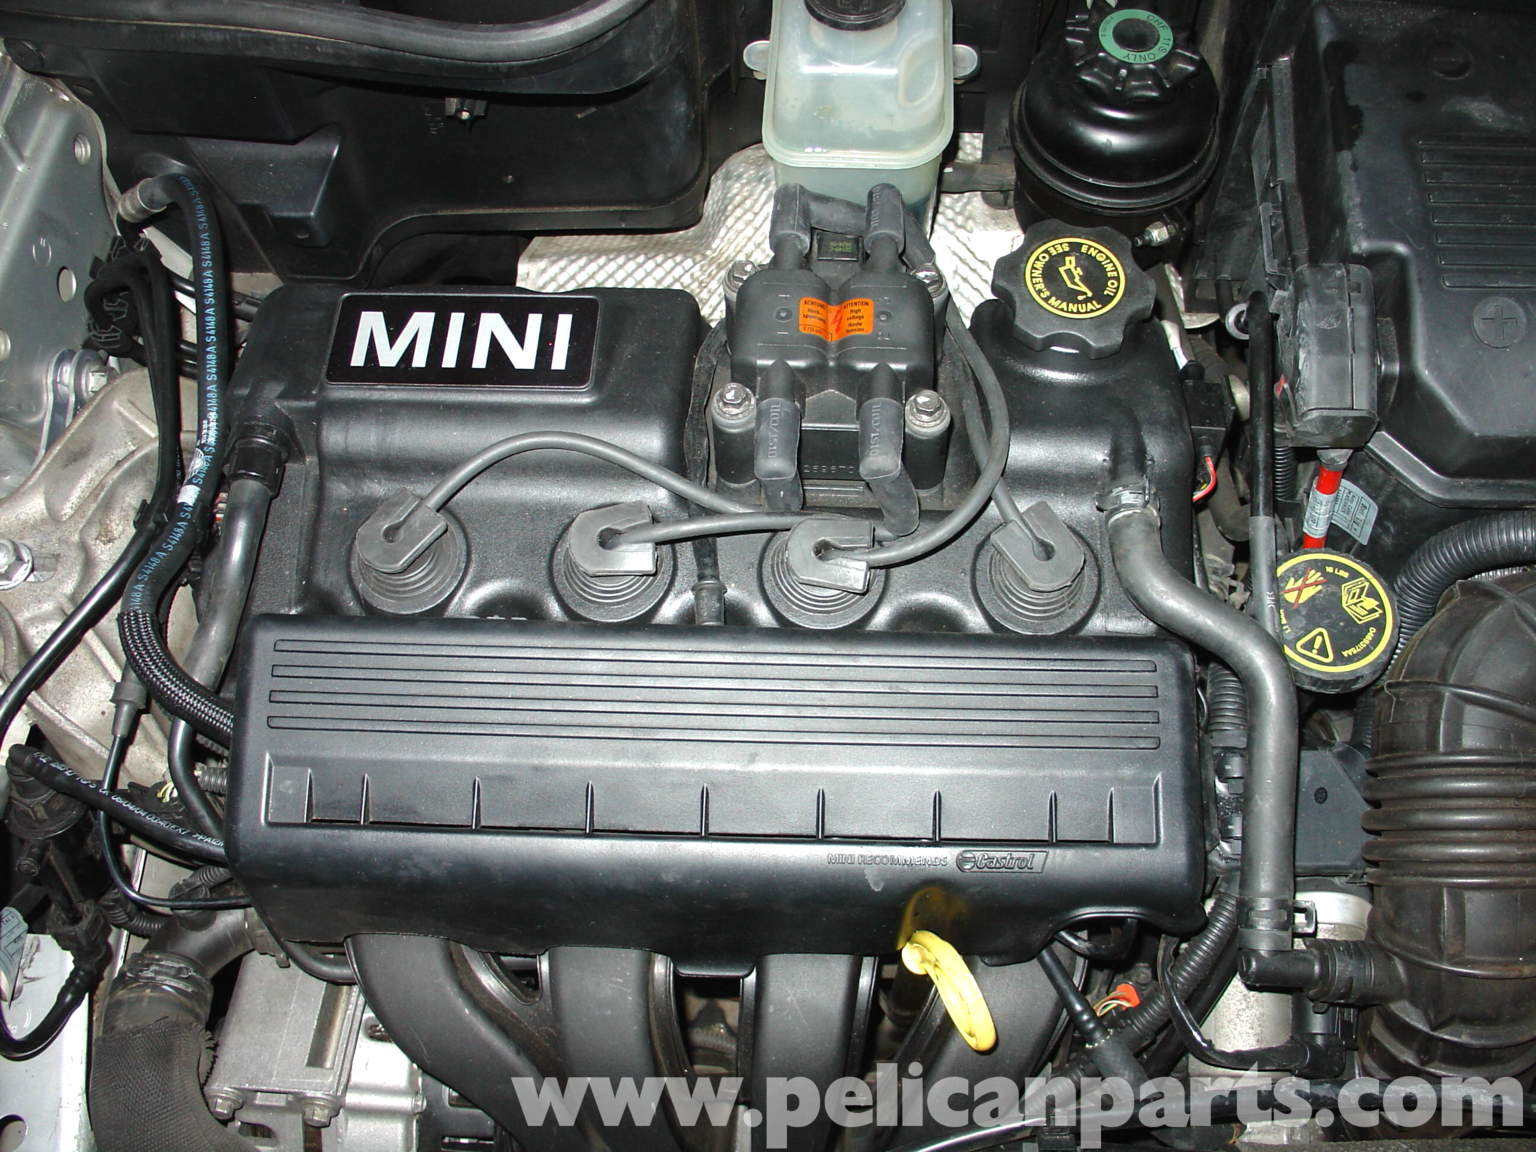 2004 Mini Cooper Engine Diagram Wiring Diagrams 2006 Compartment Saab 9 3 Spark Plug Free Bay